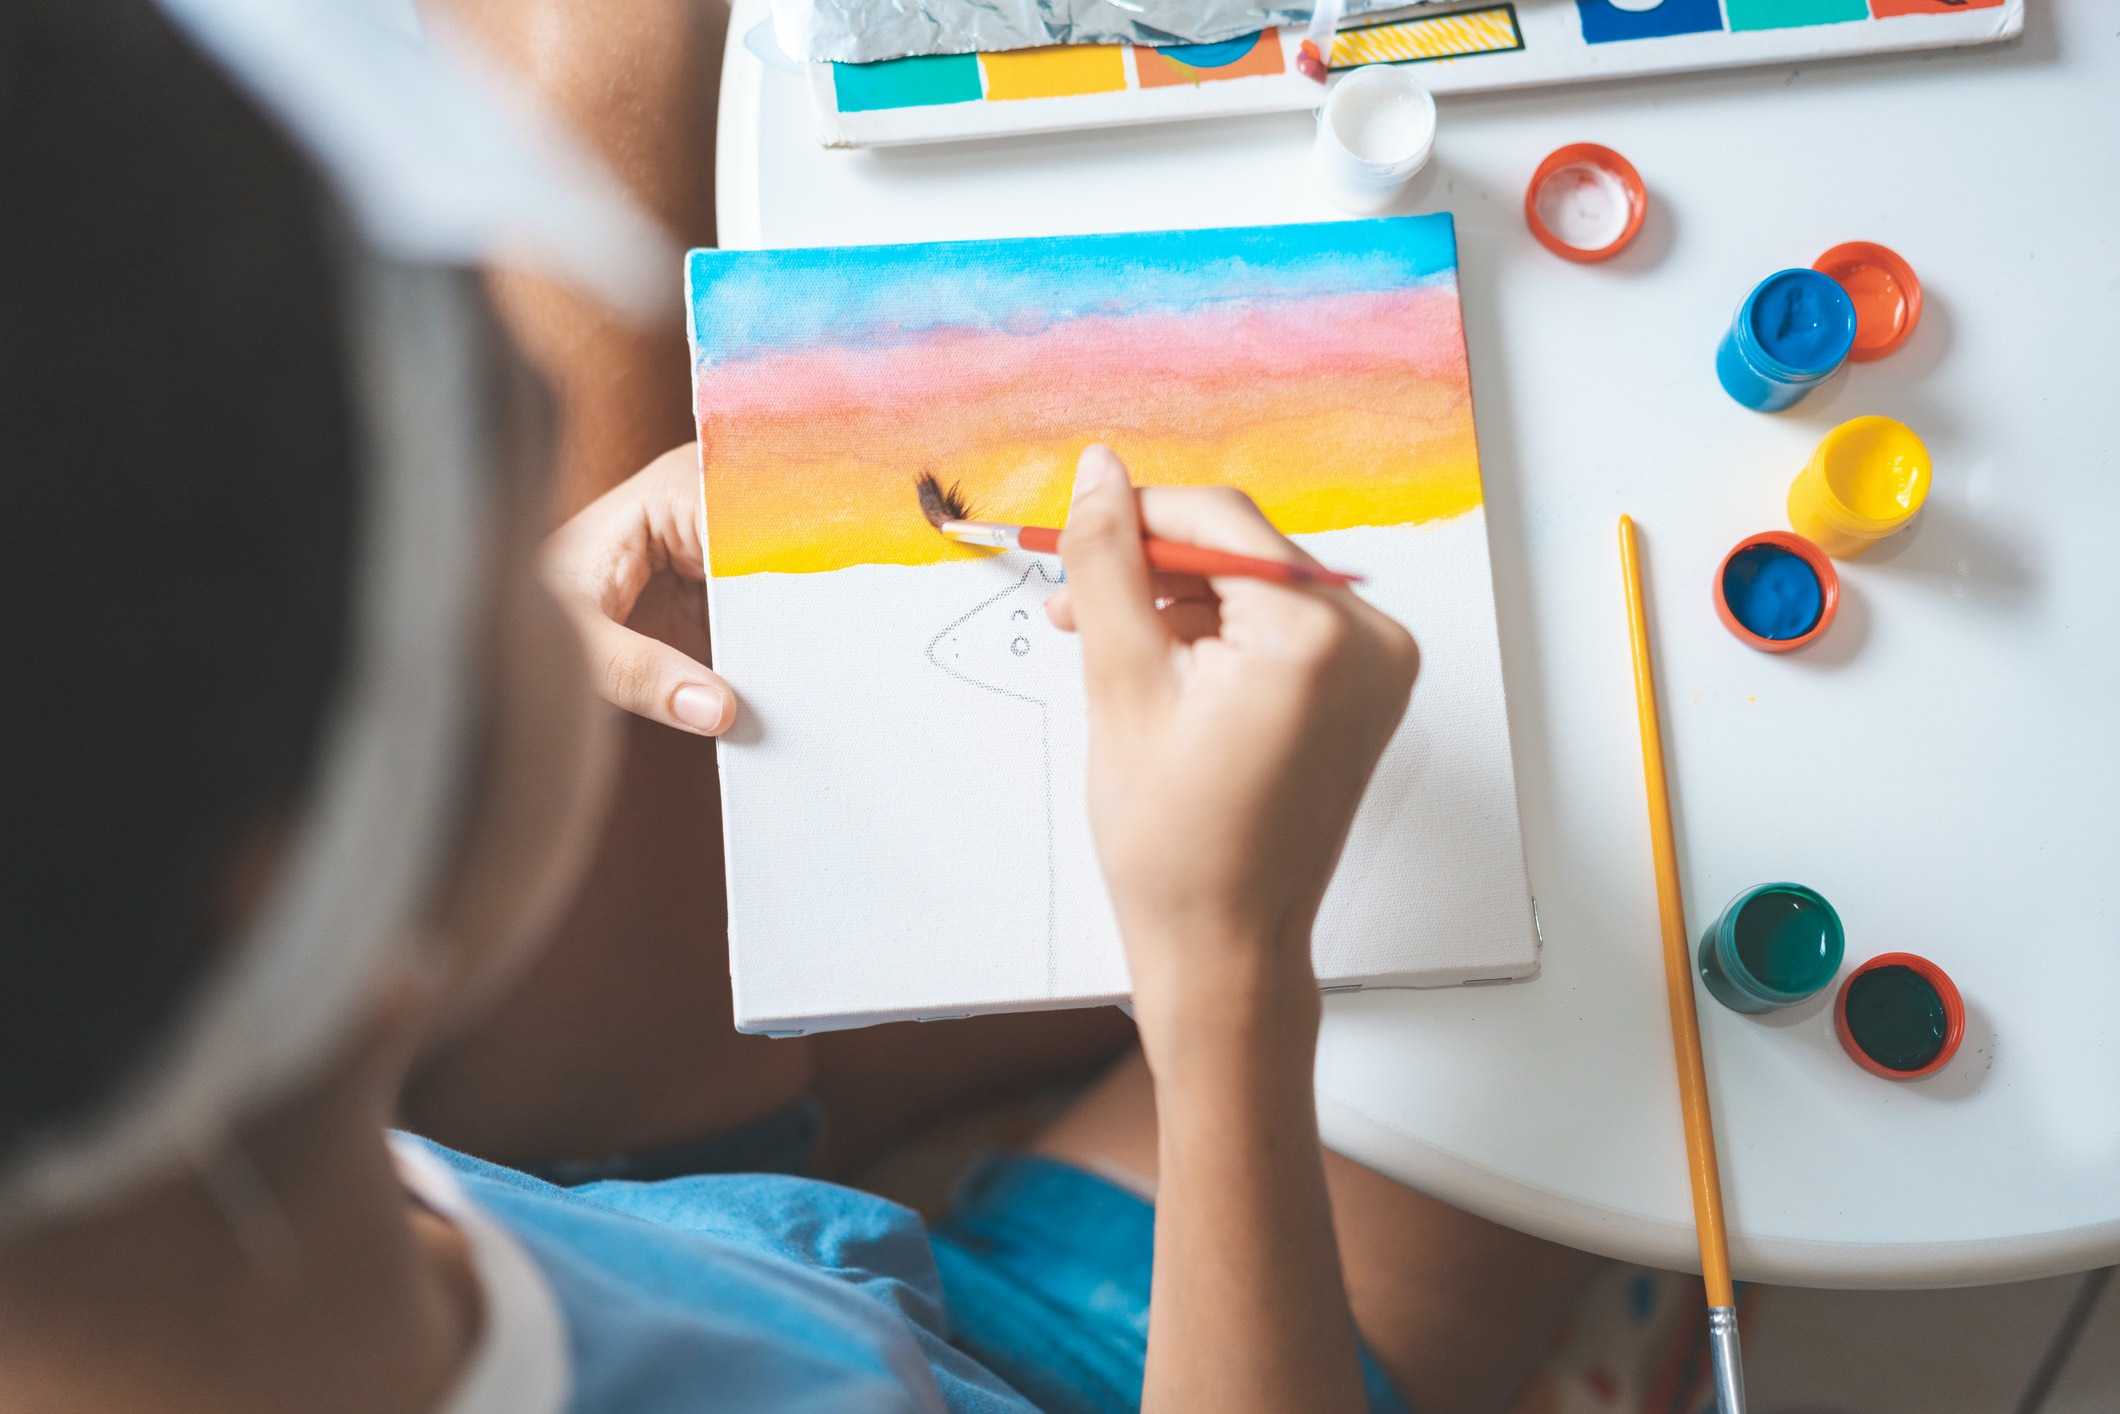 Create Art Studio In-person art classes for teens and youth and tweens at Toronto's best art school